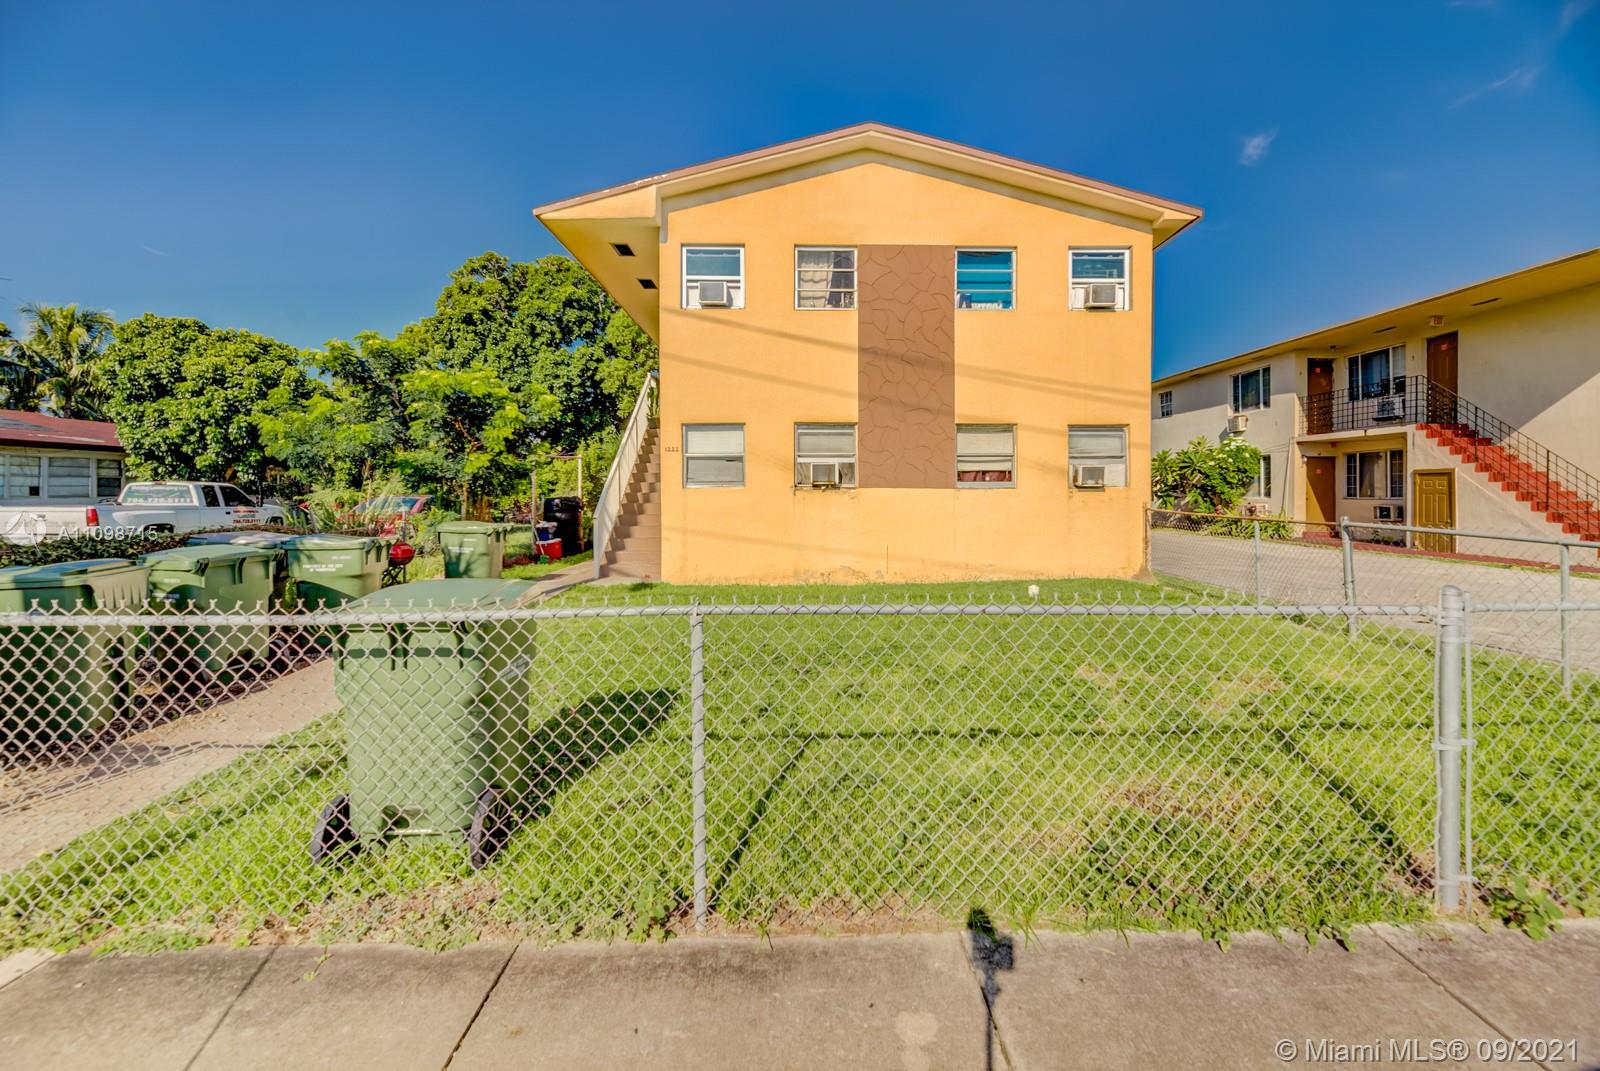 1222 NE Krome Ter, Homestead, Florida 33030, ,Residential Income,For Sale,Krome Ter,A11098715